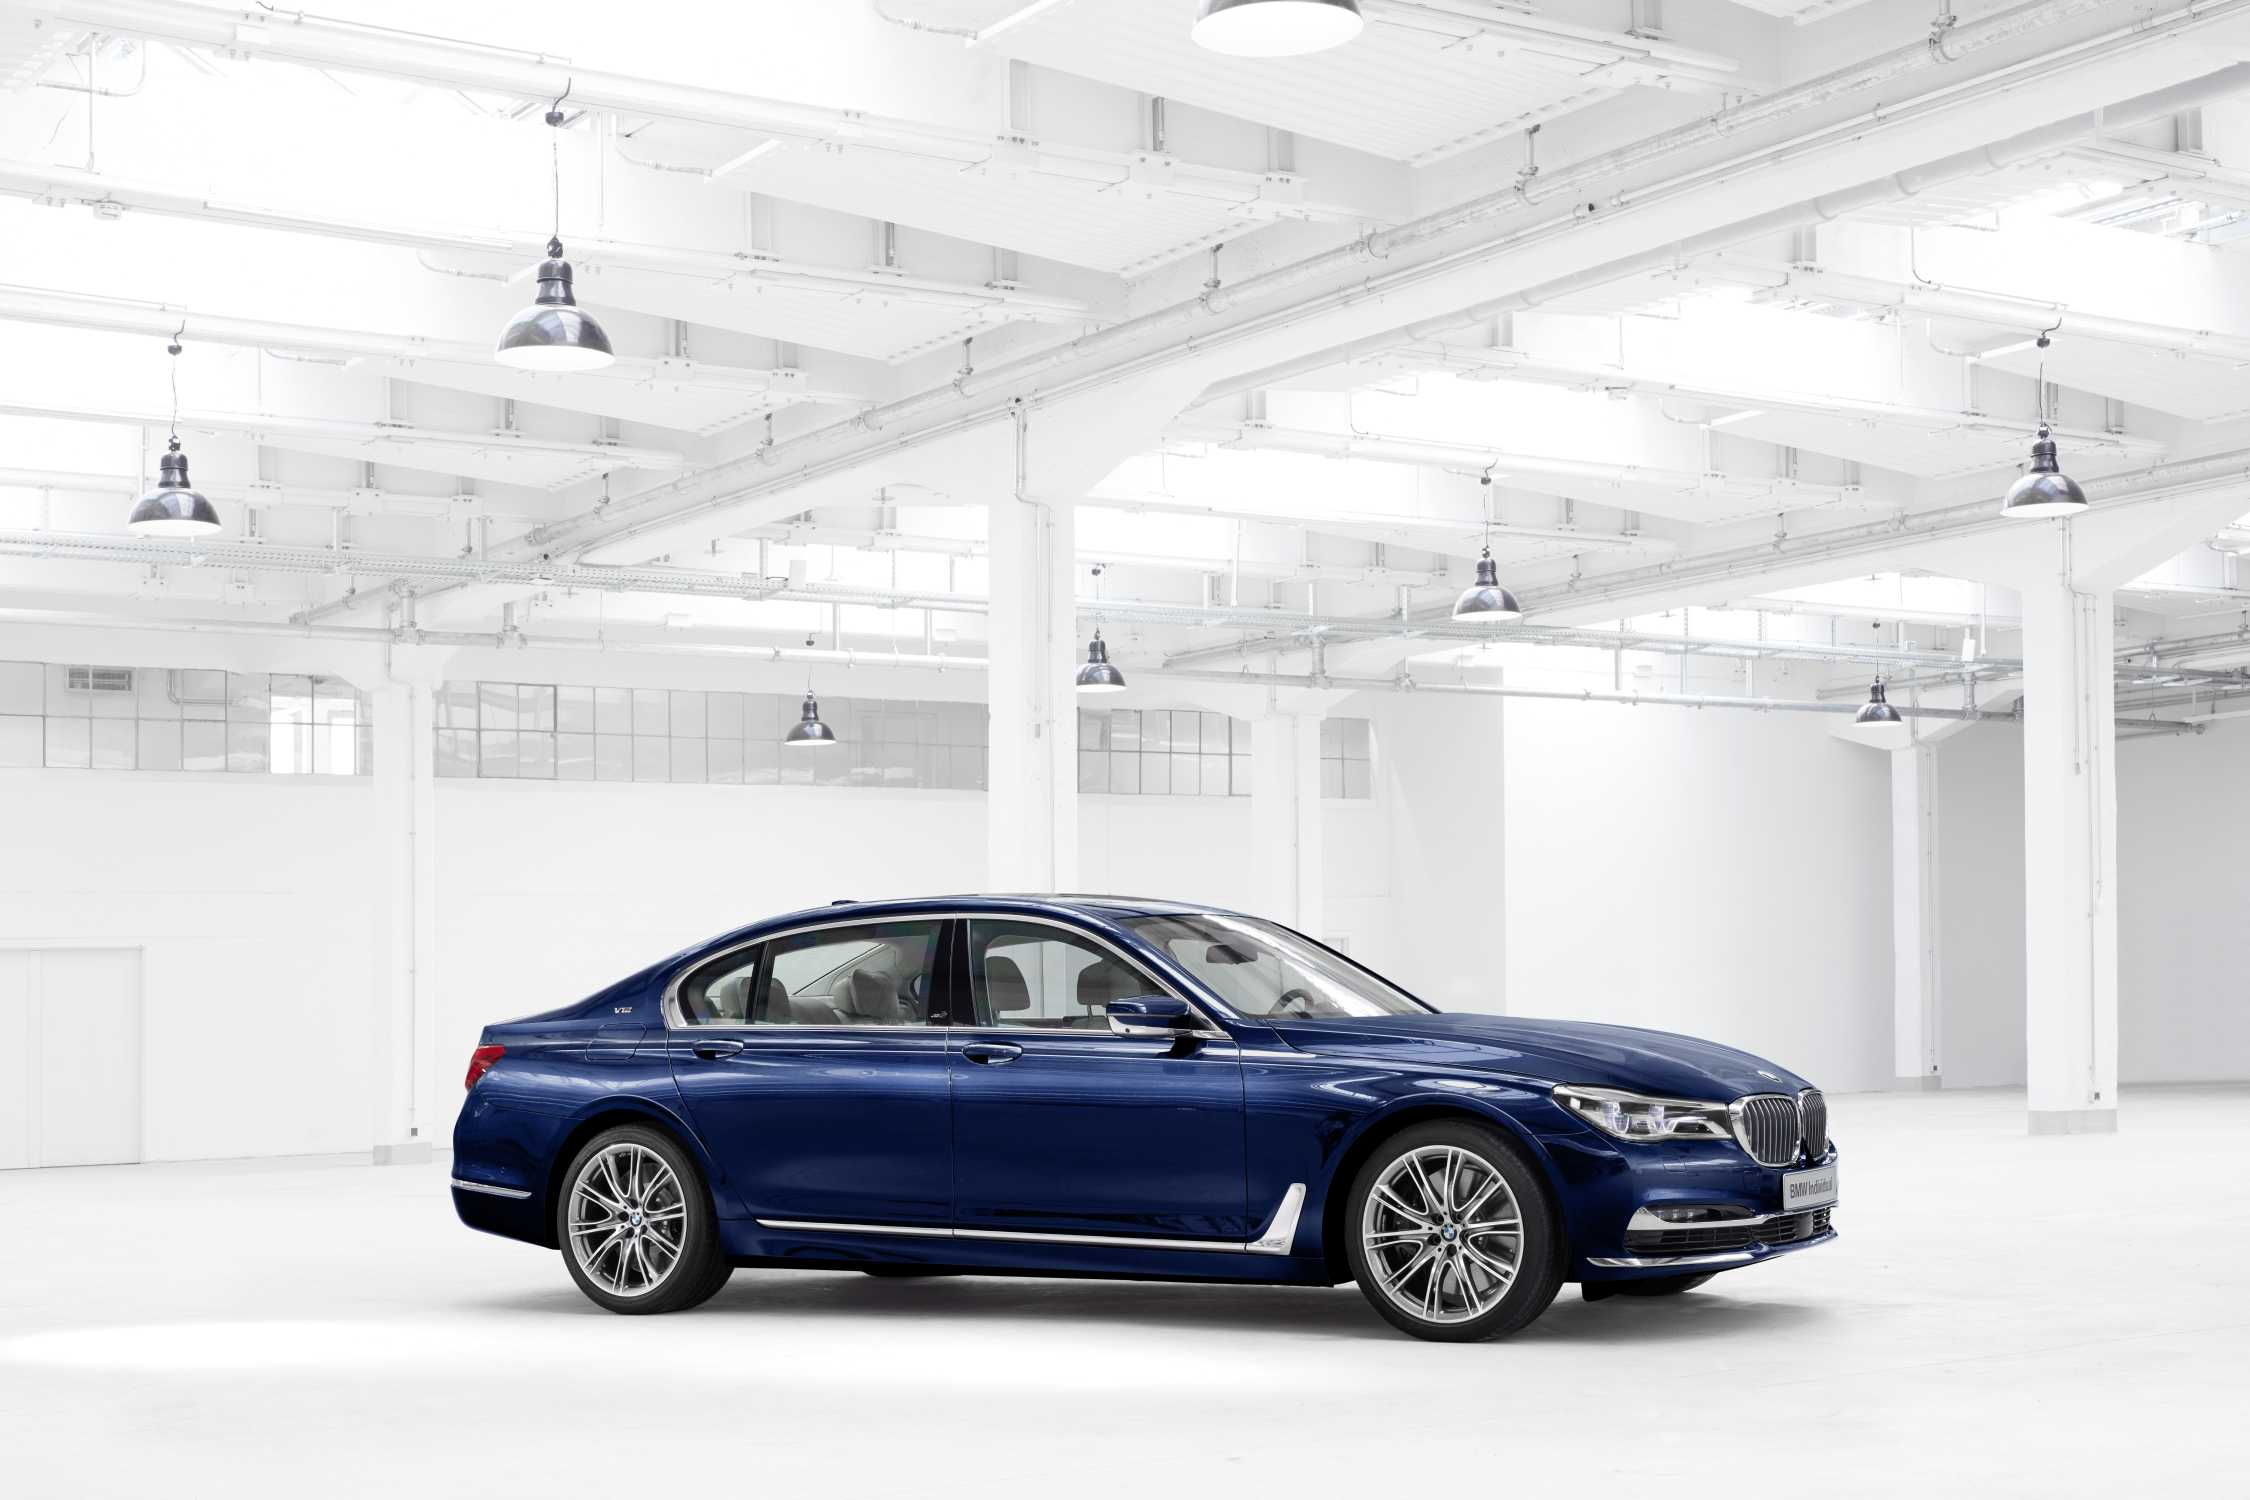 Trendsetting Luxury Bmw 7 Series Centennial Models Bmw Individual 7 Series The Next 100 Years